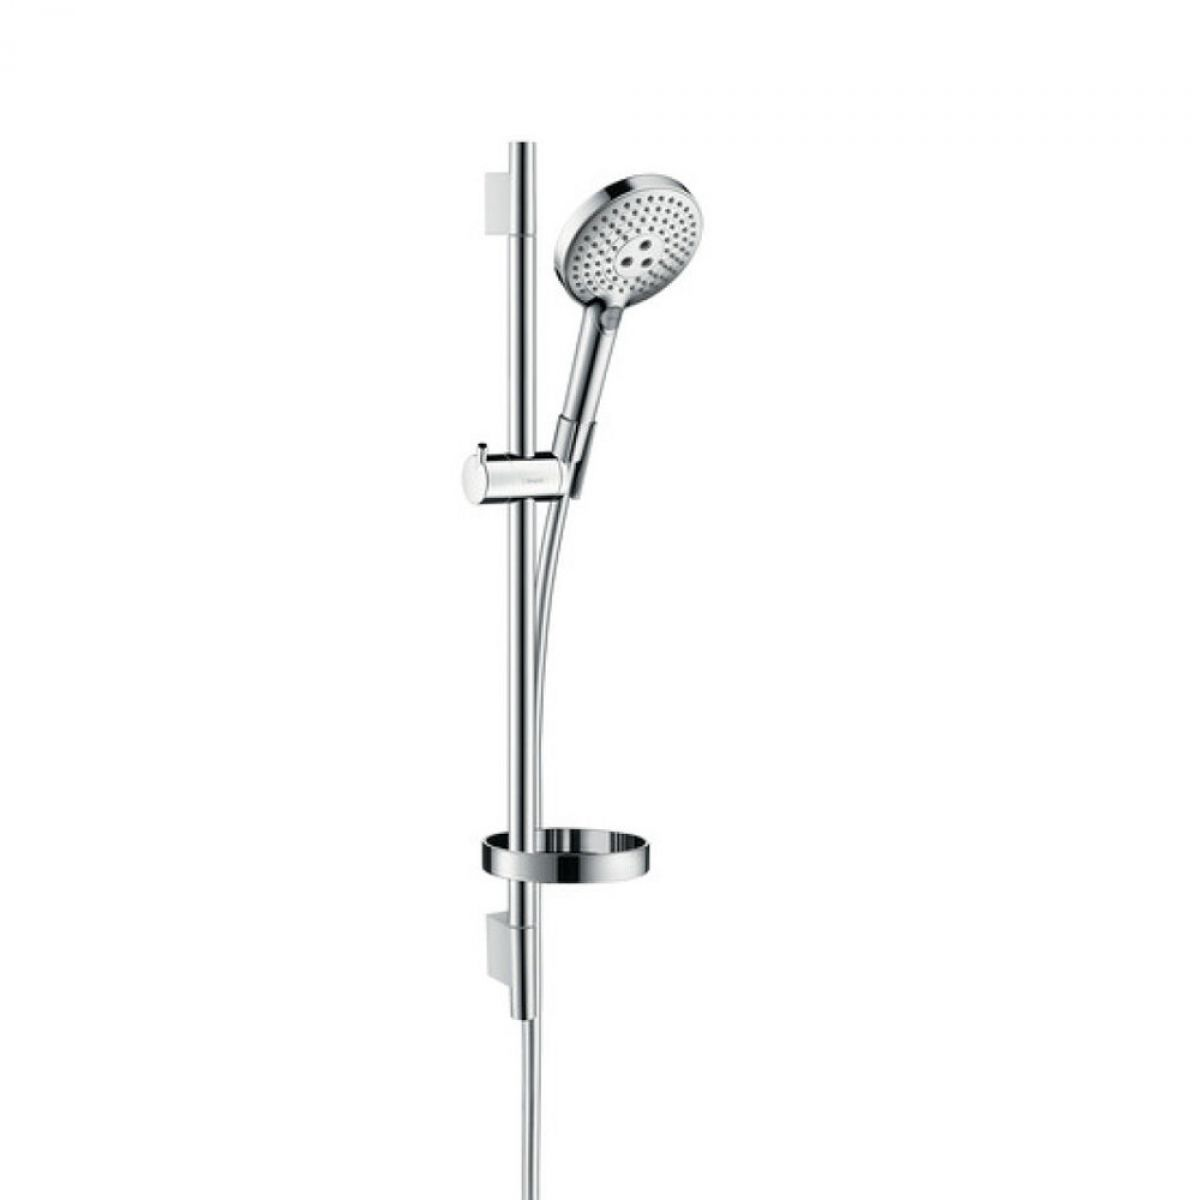 hansgrohe raindance select s 120 3jet shower set uk. Black Bedroom Furniture Sets. Home Design Ideas